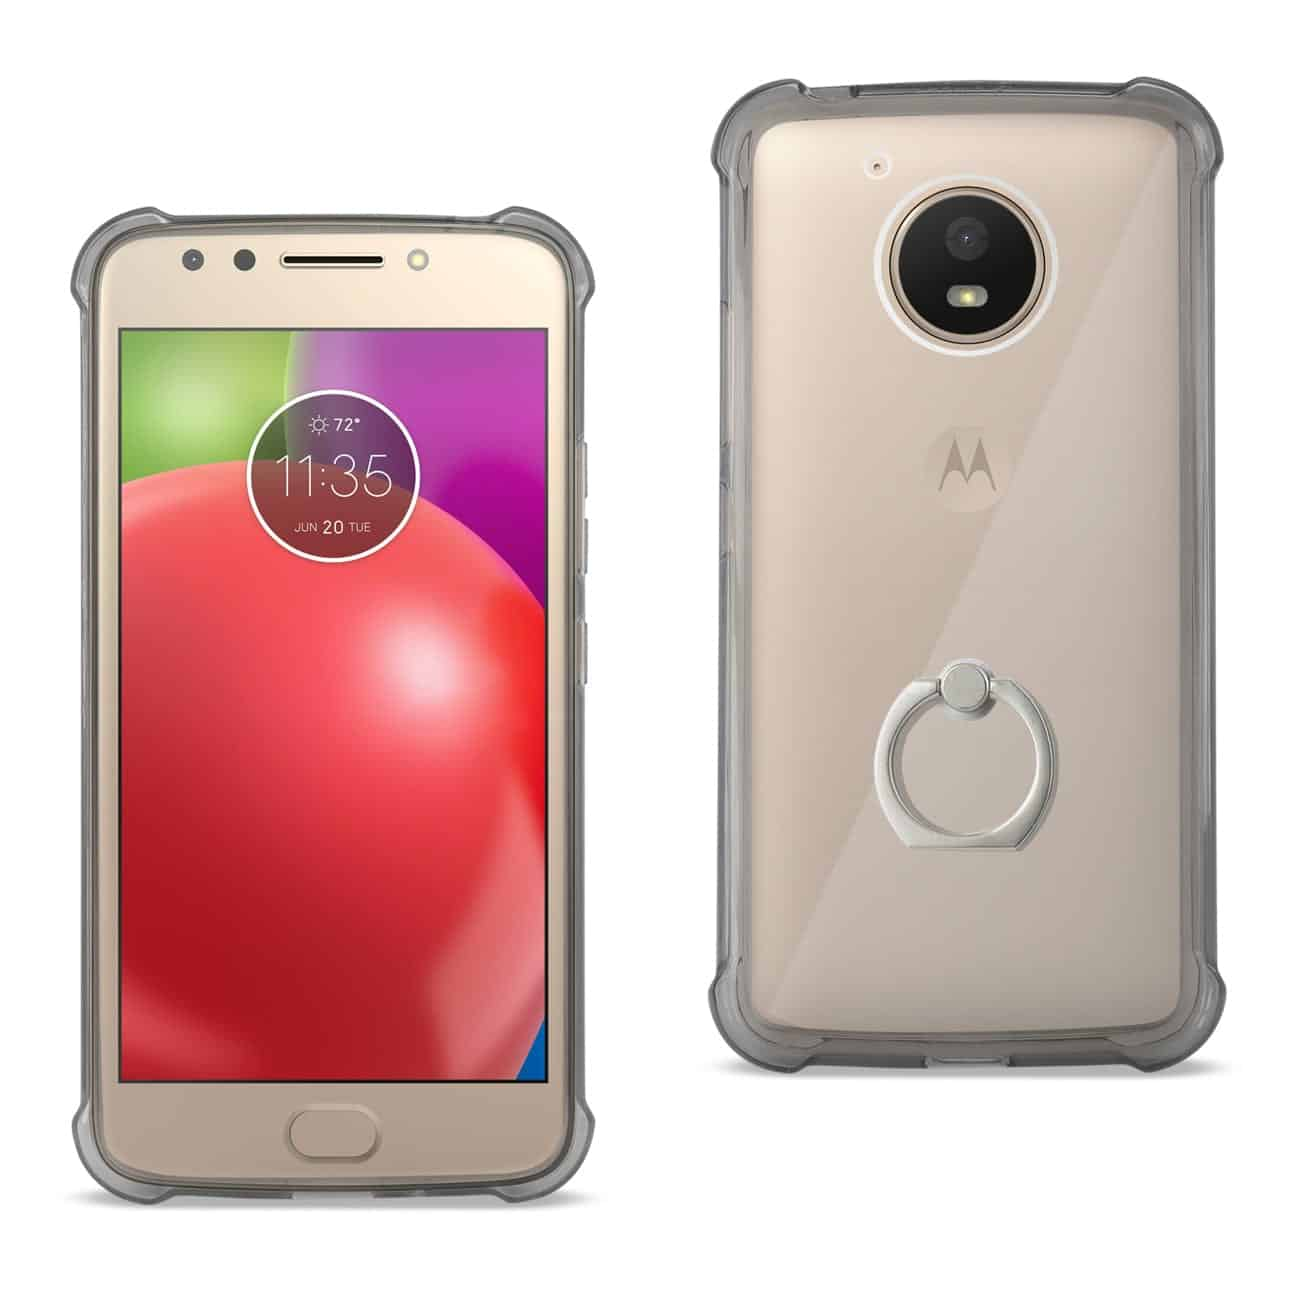 MOTOROLA MOTO E4 ACTIVE TRANSPARENT AIR CUSHION PROTECTOR BUMPER CASE WITH RING HOLDER IN CLEAR BLACK